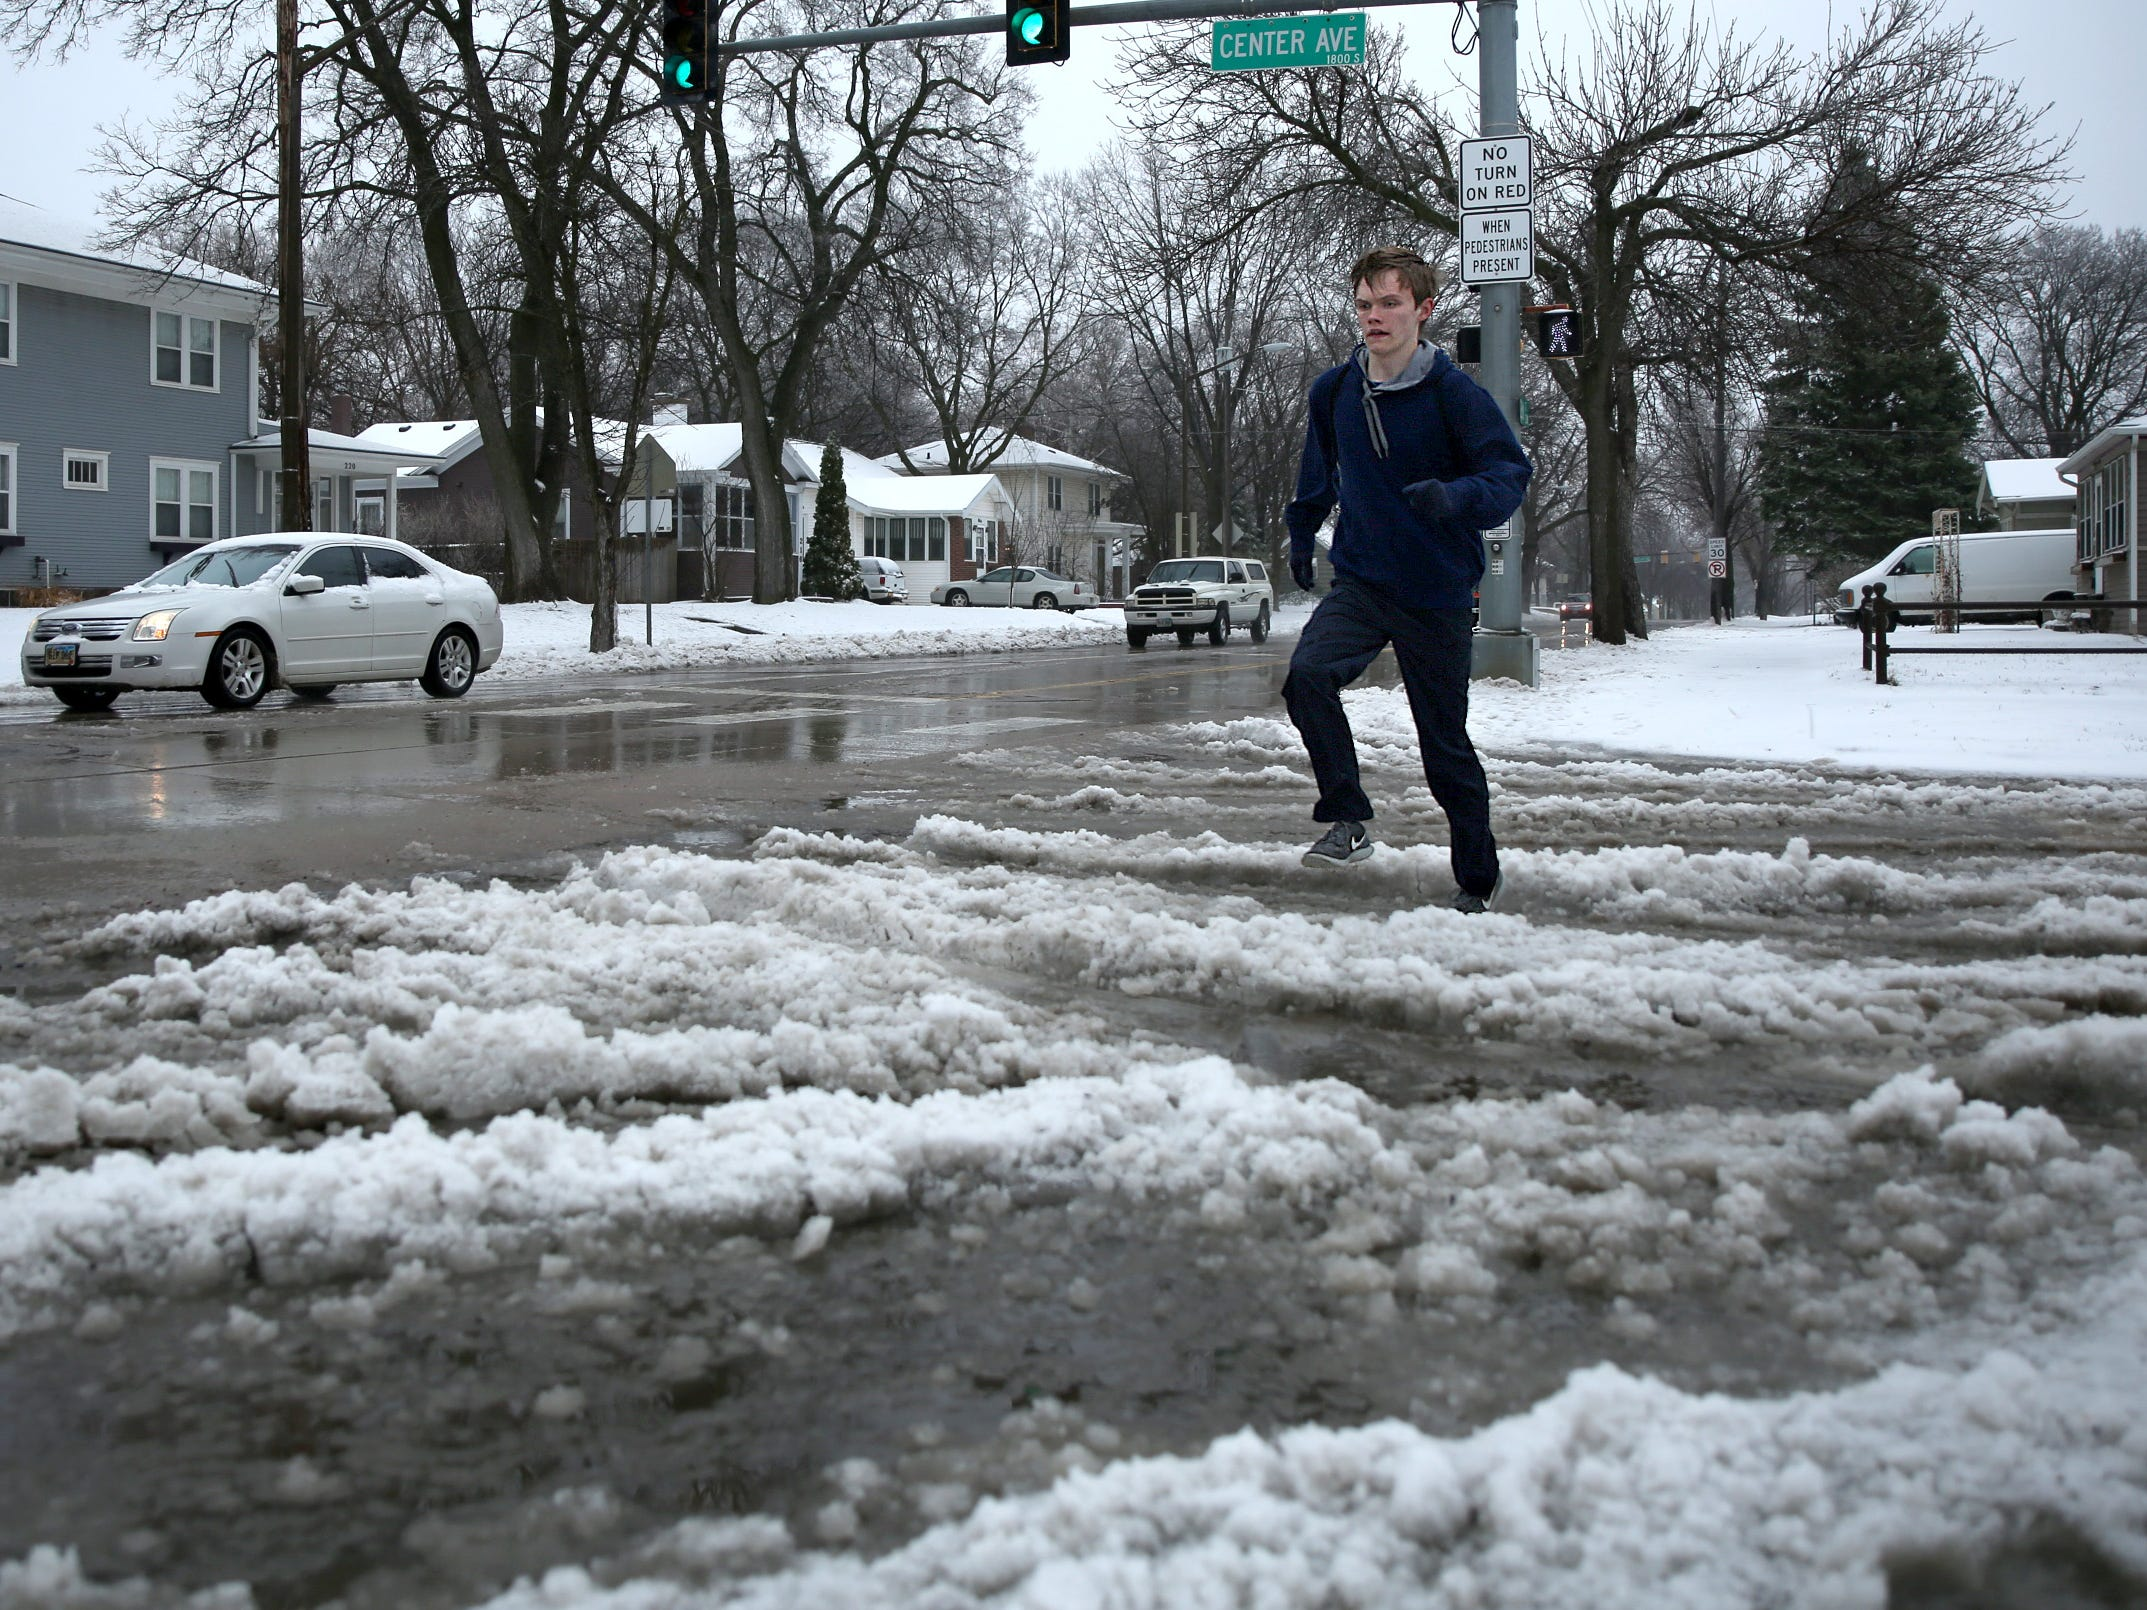 Adam Monson avoids slush as he runs along 26th Street on Thursday, April 11. School was canceled for the 15-year-old so he decided to fill up his time with exercise.